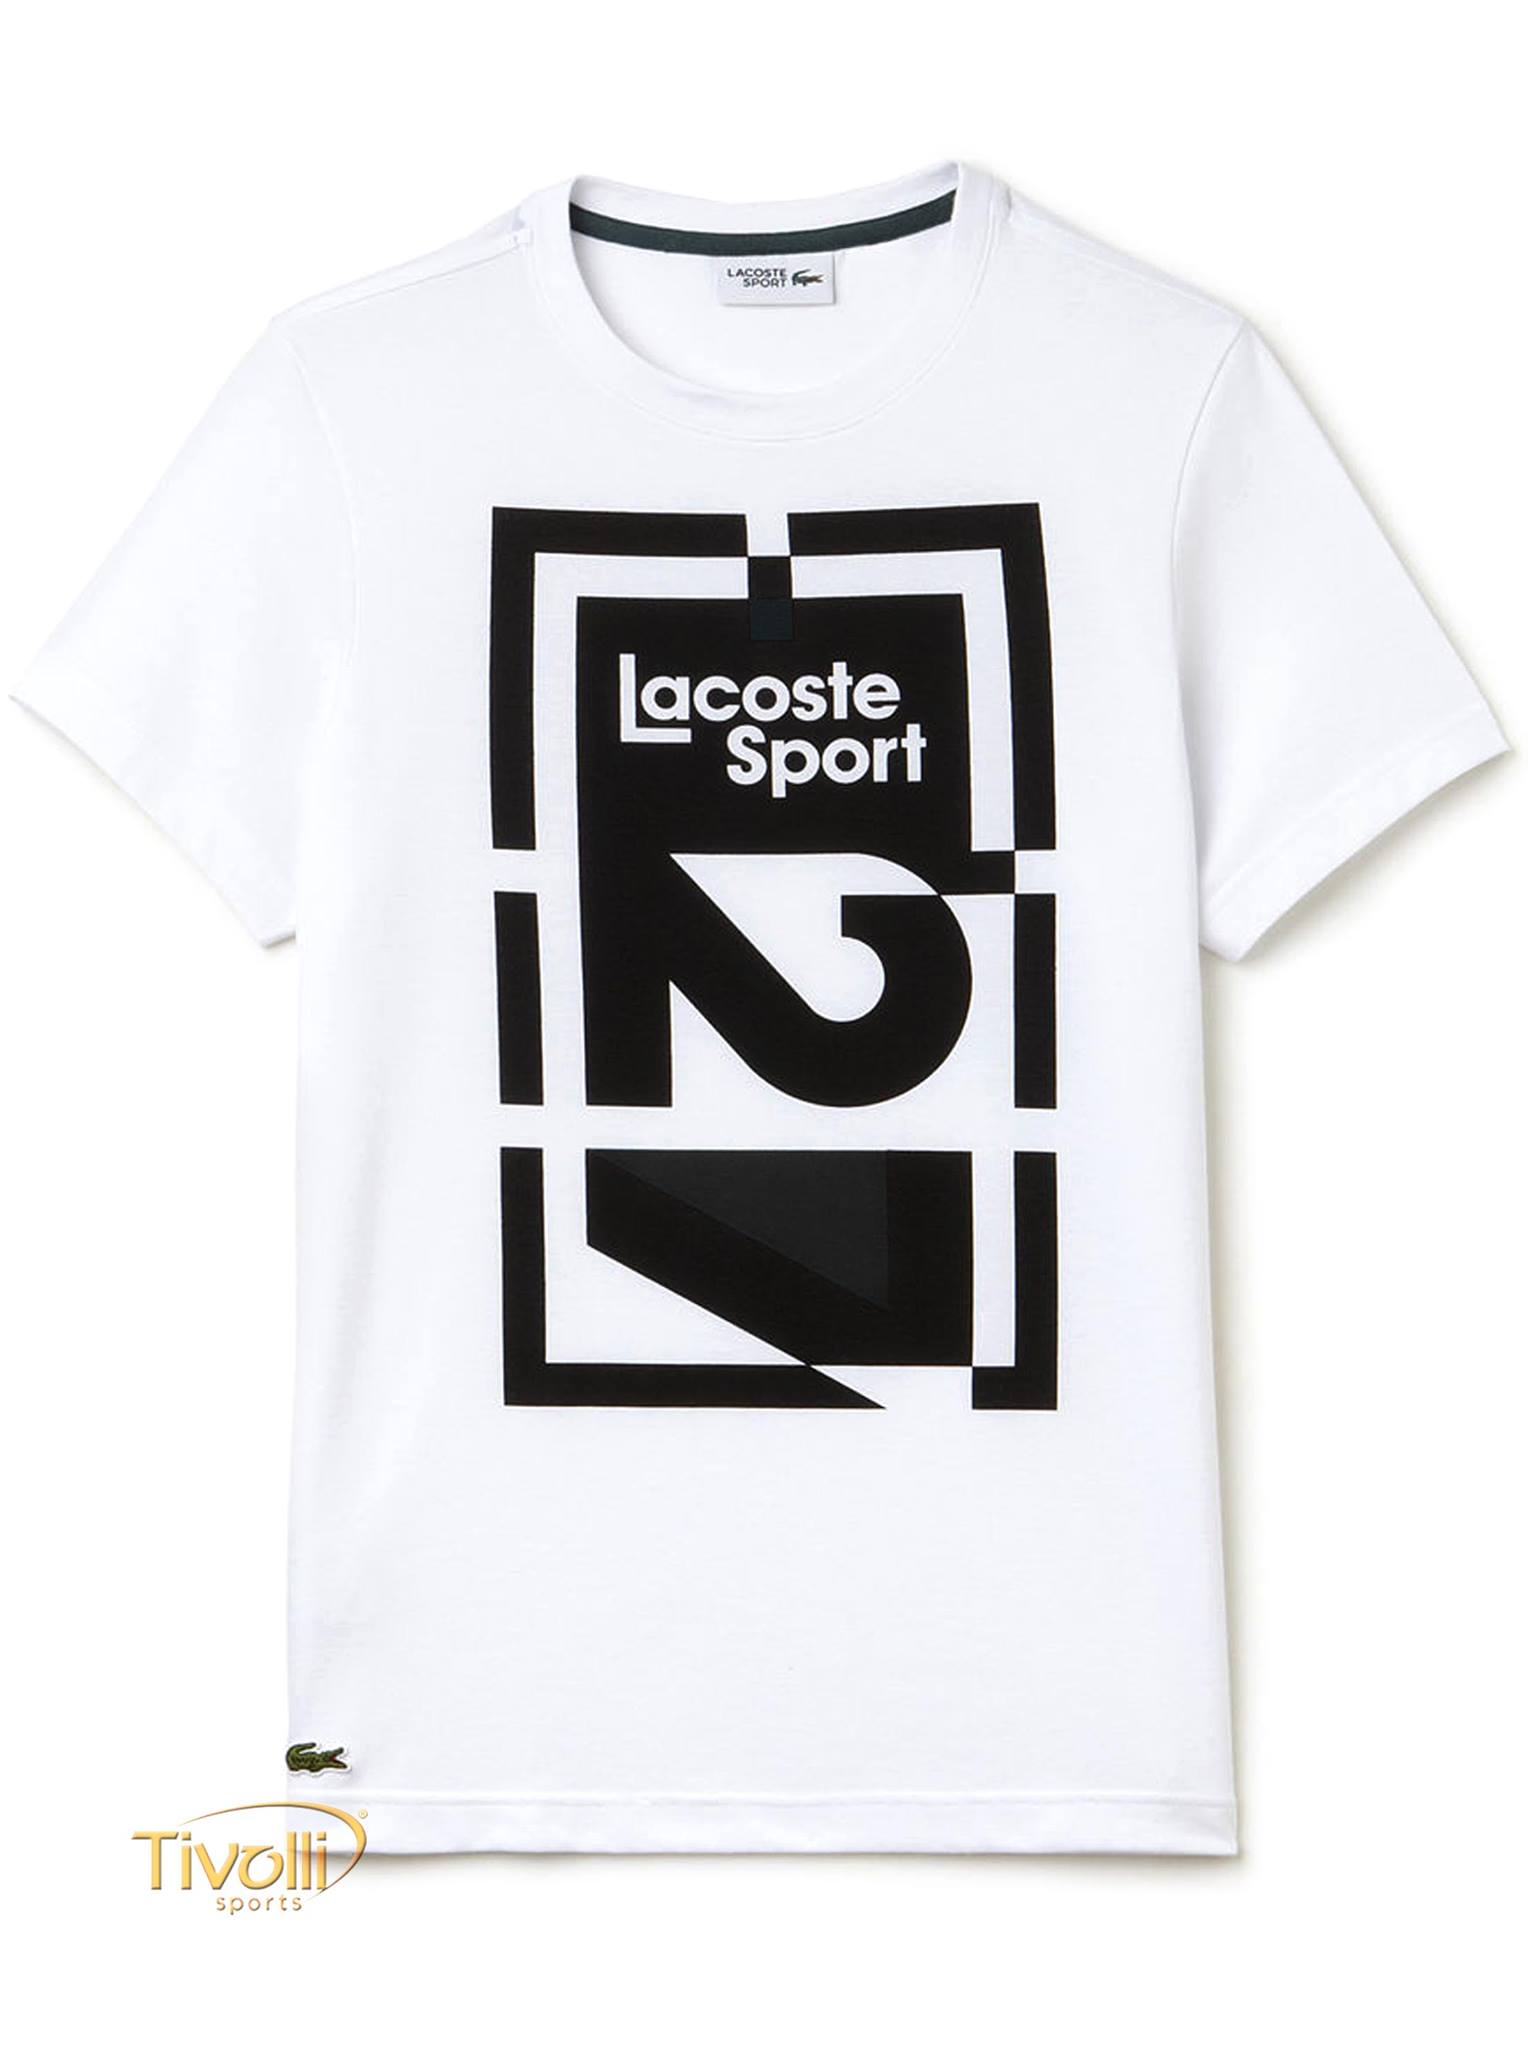 Camiseta Lacoste Sport Technical Jersey Abstract 27   Branca e Preta   b68473daf1